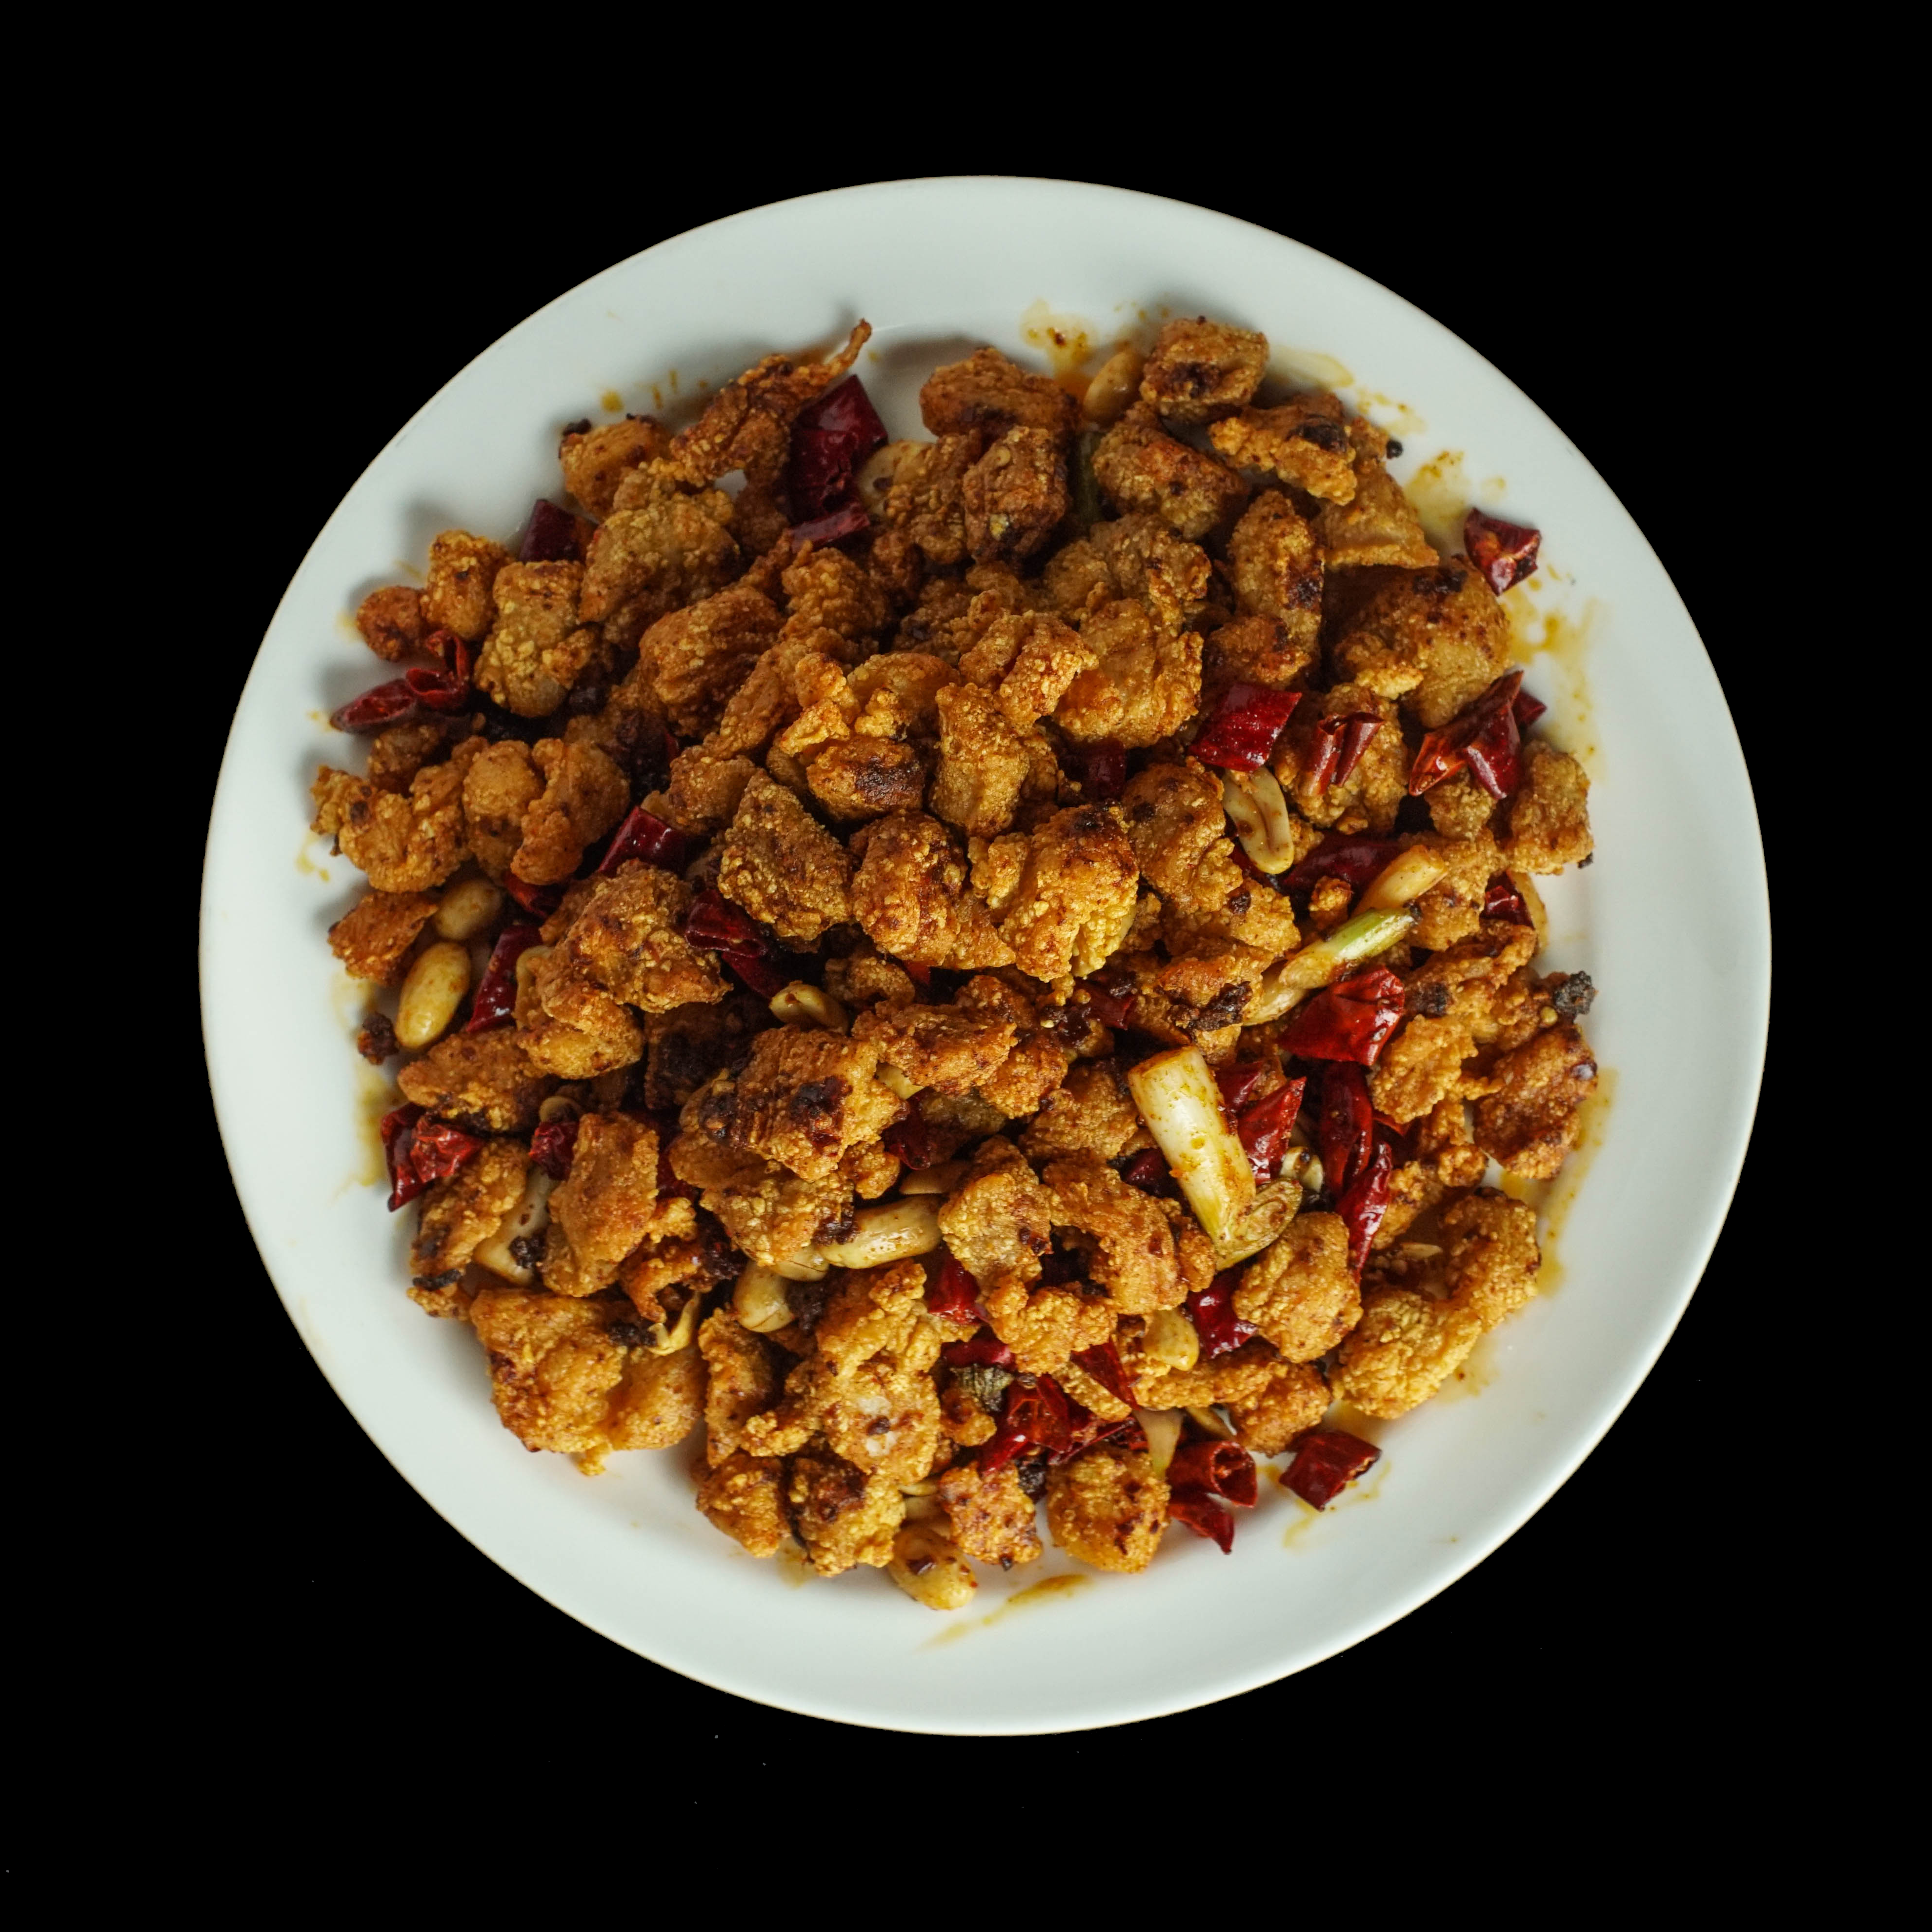 85. 干爆辣子鸡 Hot Chili Popcorn Deep Fried Chicken Image